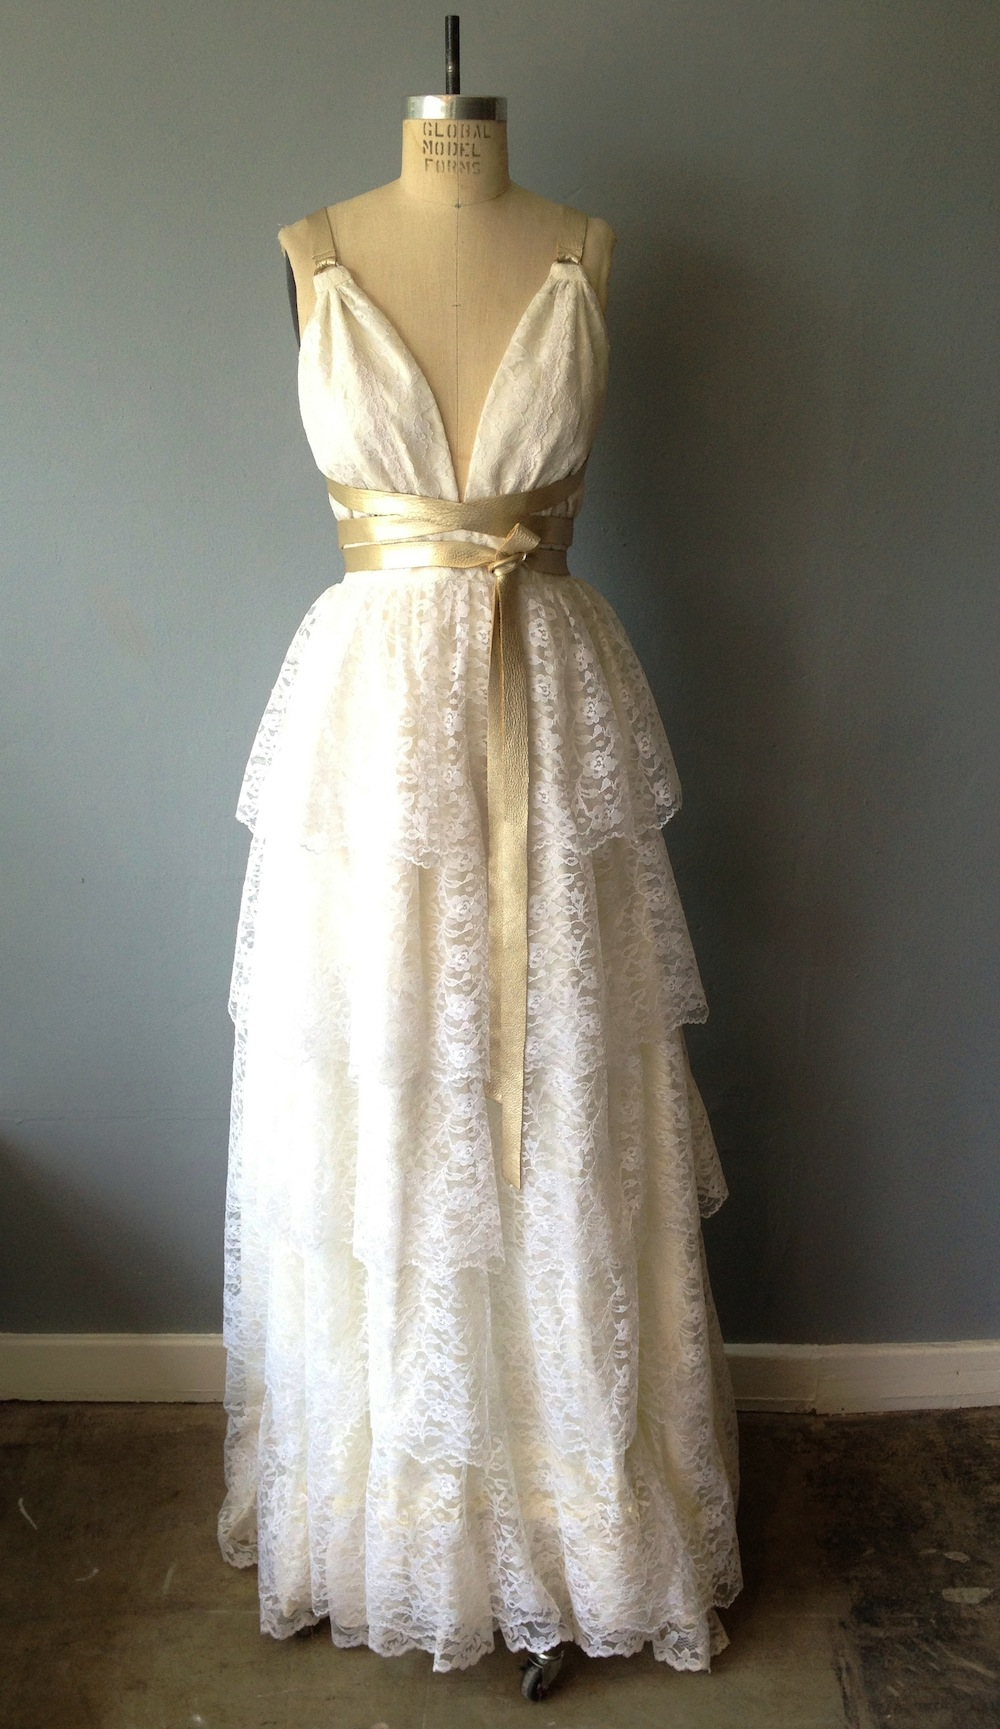 What to Know Before You Shop for a Vintage Wedding Dress - Racked NY